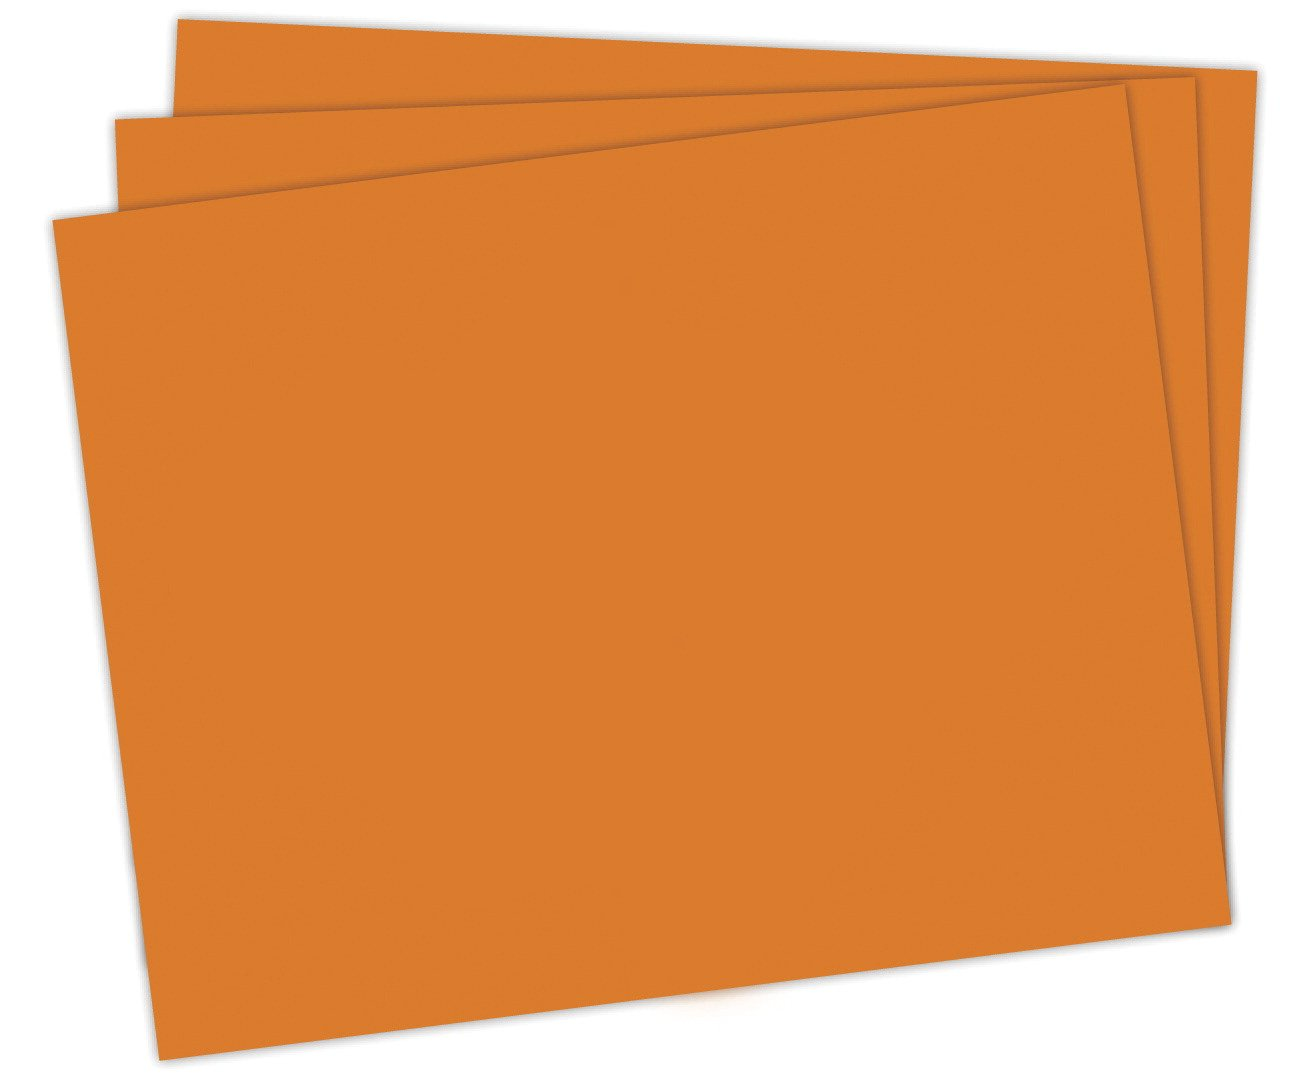 School Smart Railroad Board, 22 x 28 Inches, 6-Ply, Orange, Pack of 25 - 1485747 by School Smart